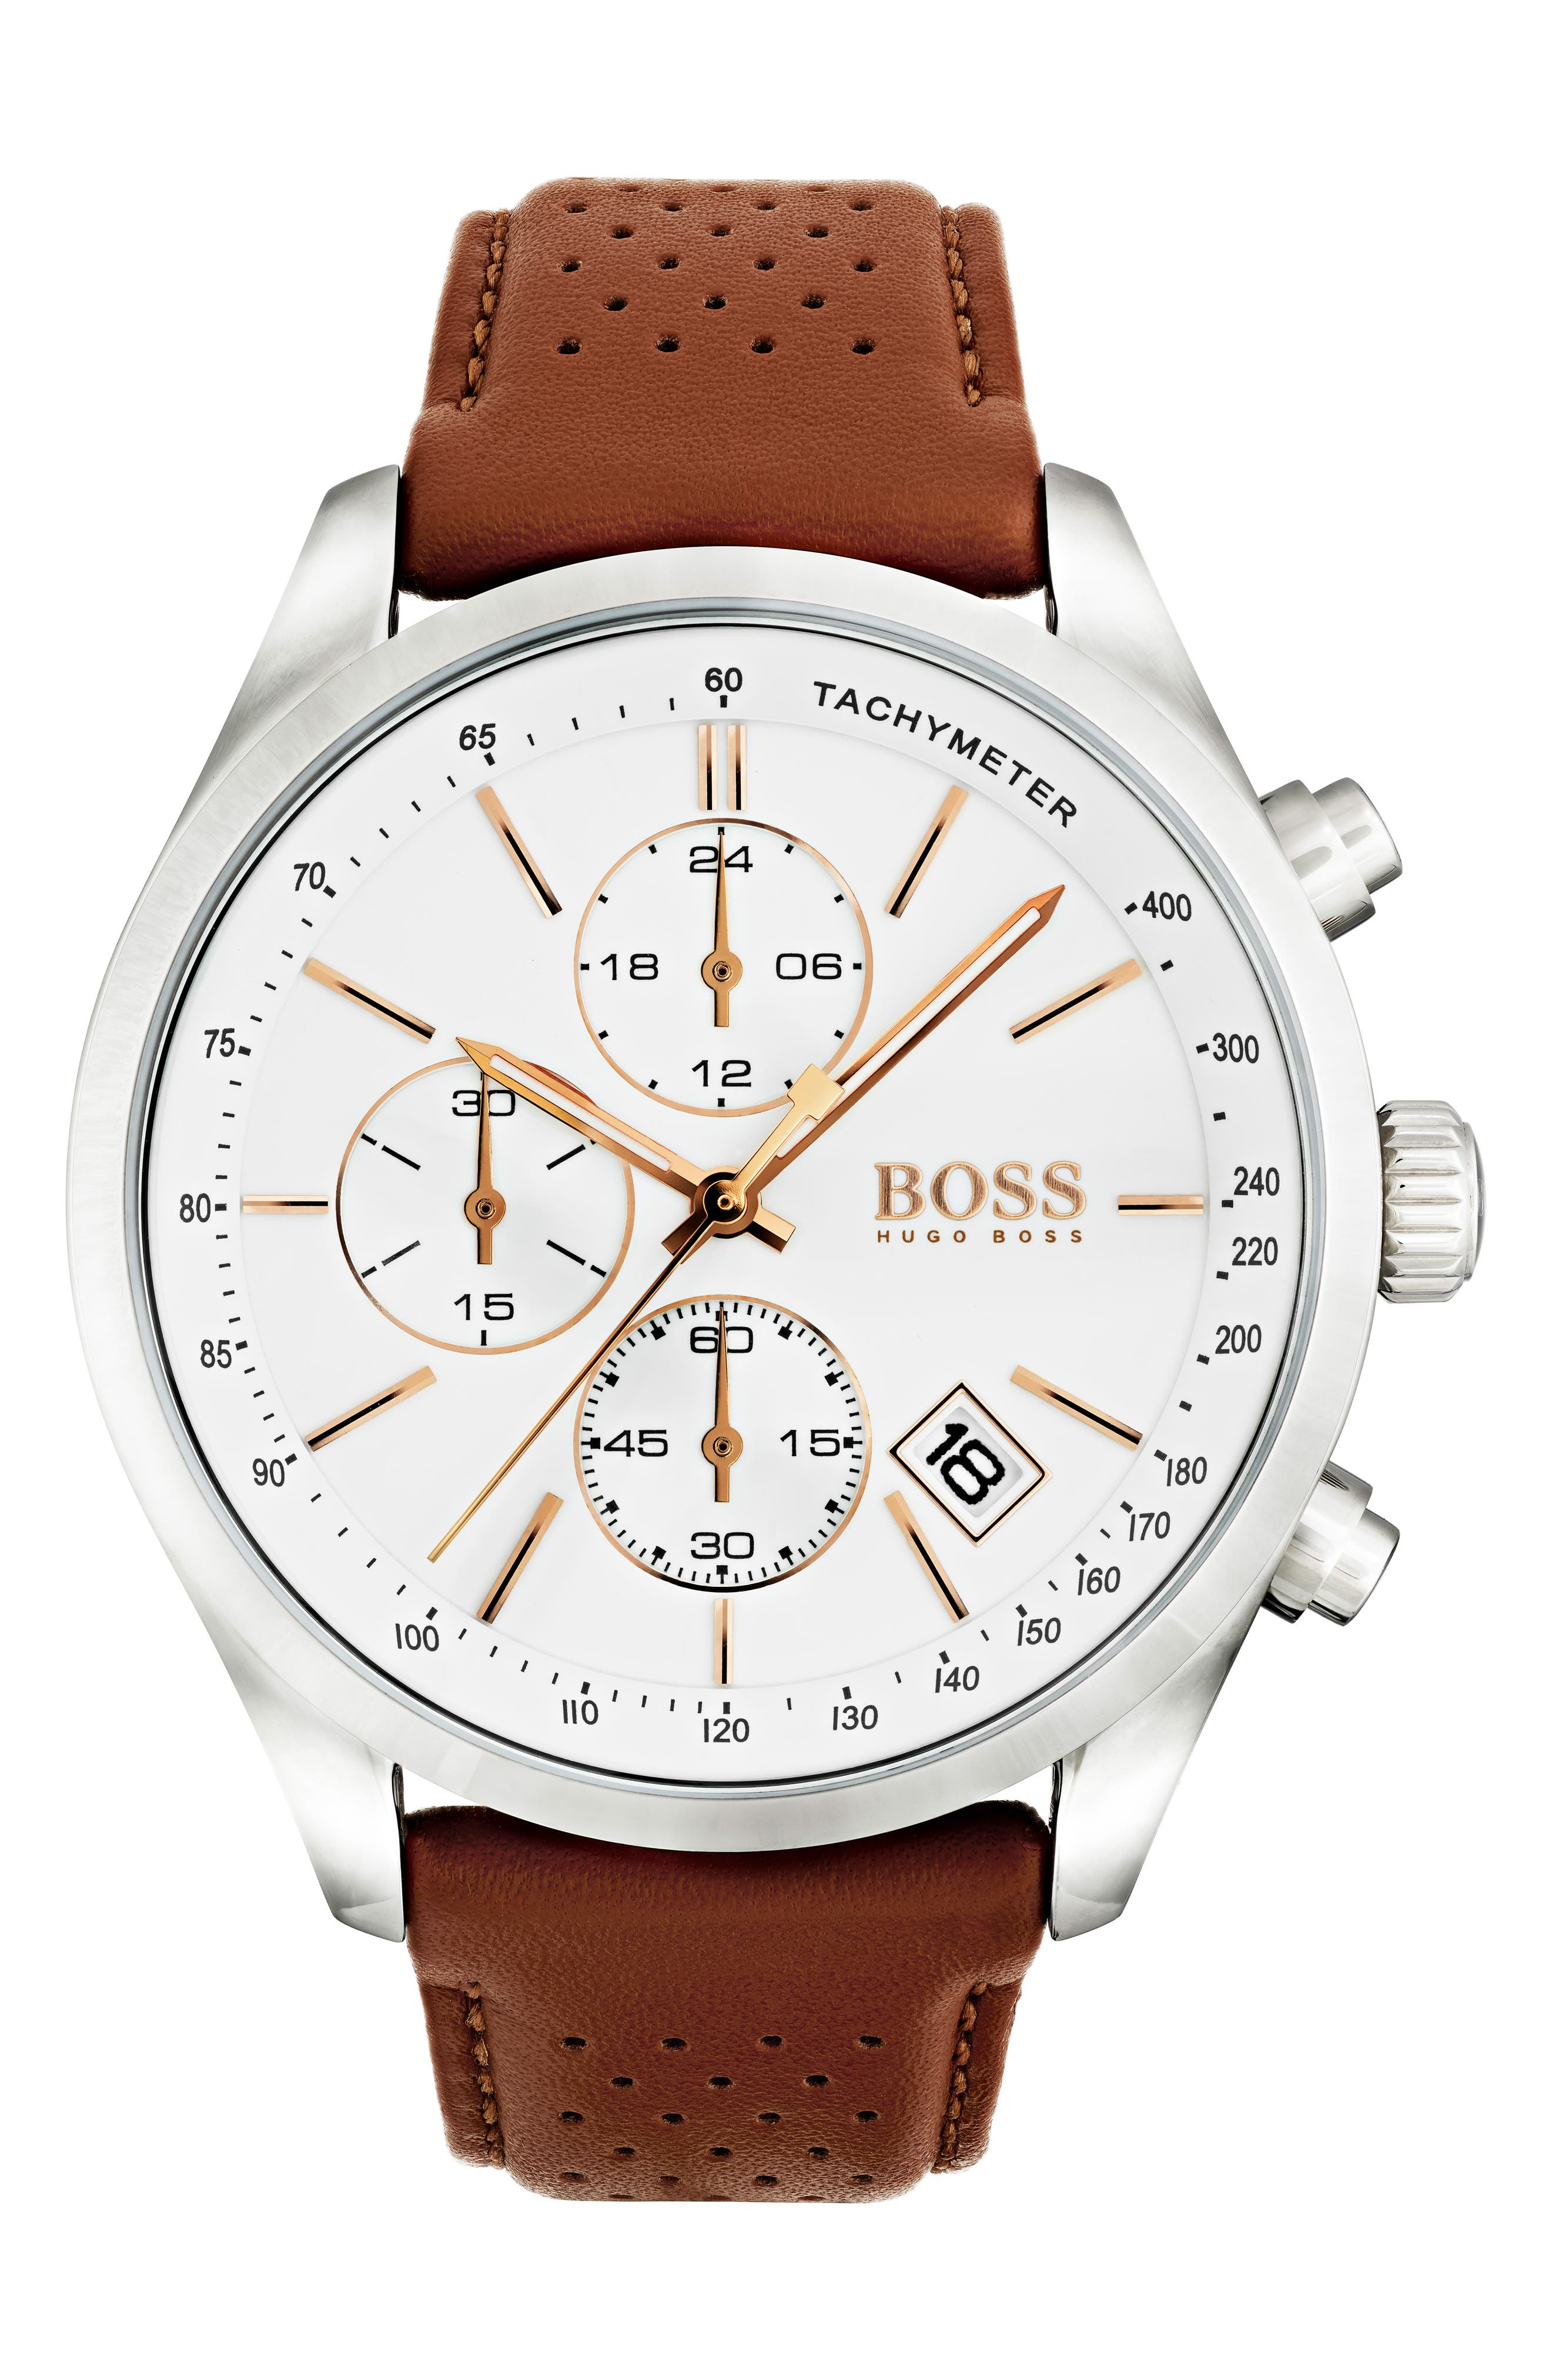 HUGO BOSS Grand Prix Chronograph Leather Strap Watch, Main, color, BROWN/ WHITE/ SILVER